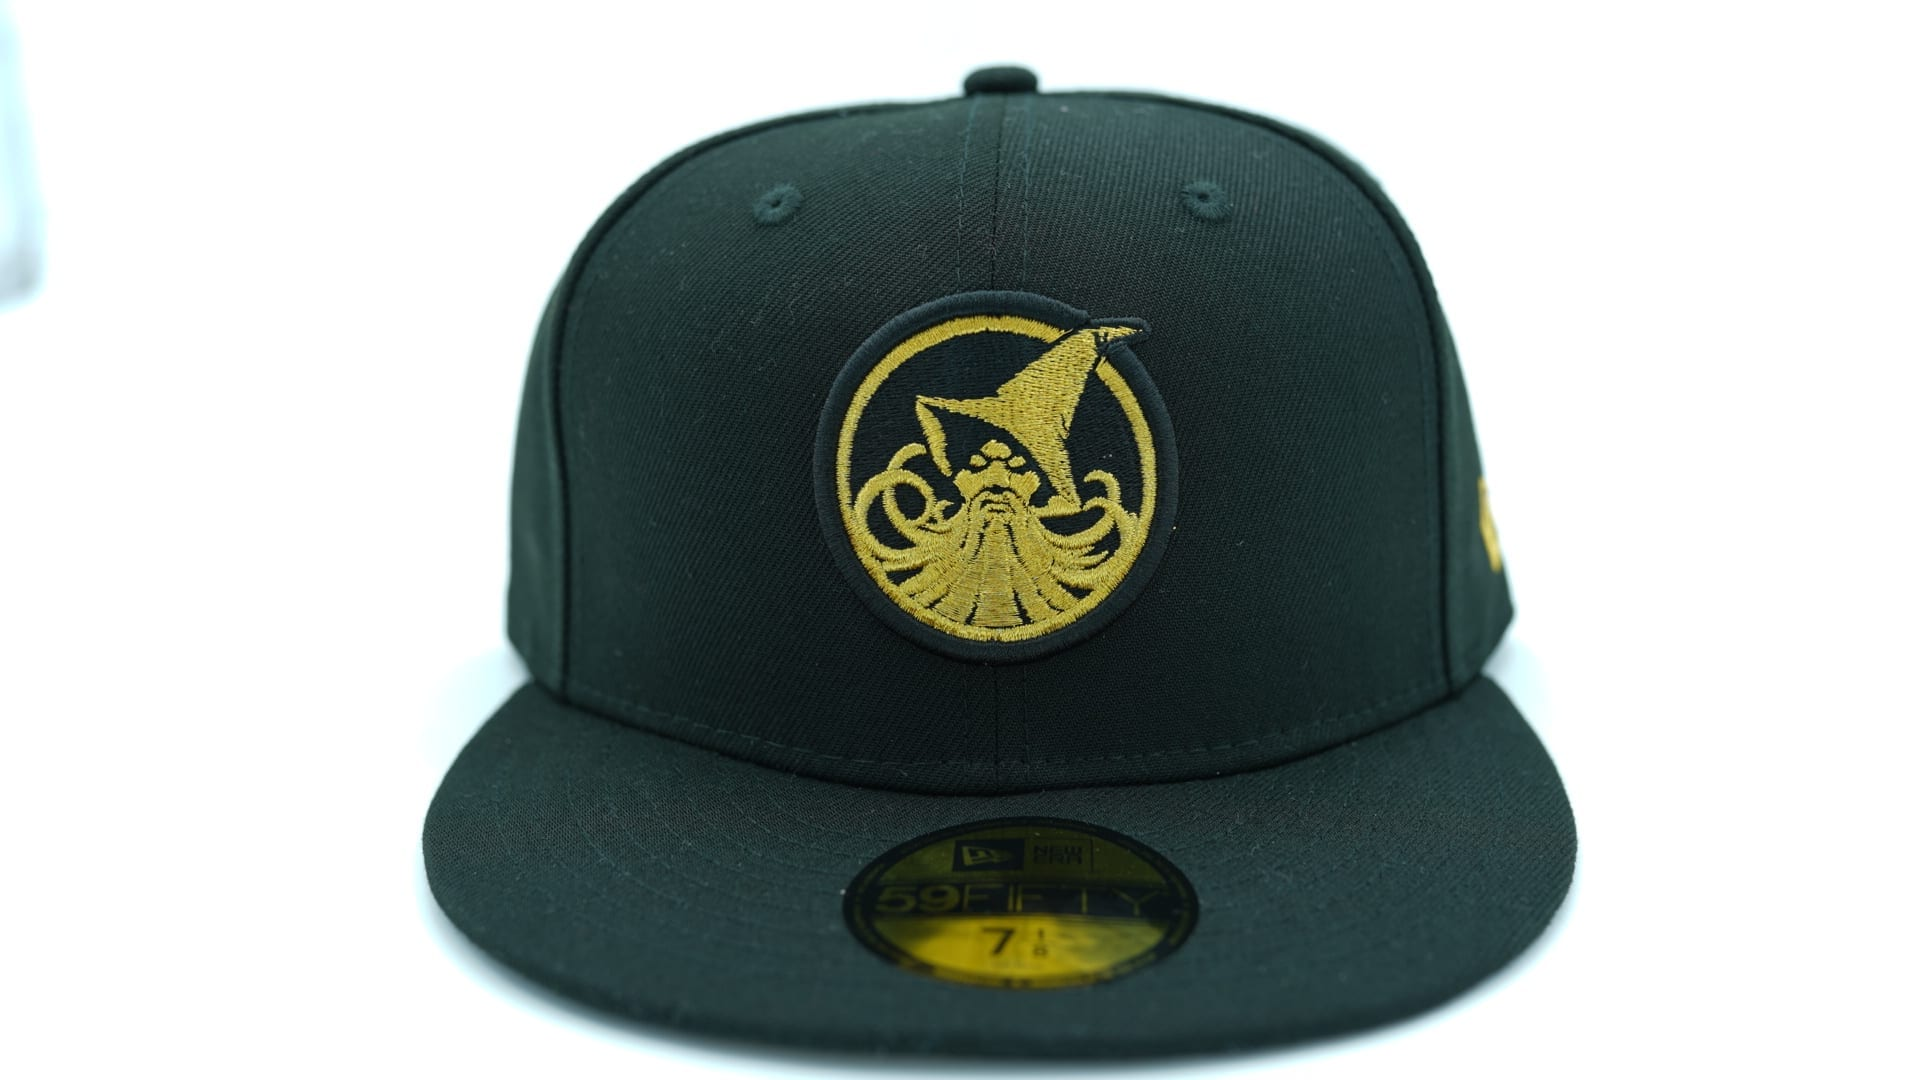 Creature Skateboards Hats With Creature Skateboard's